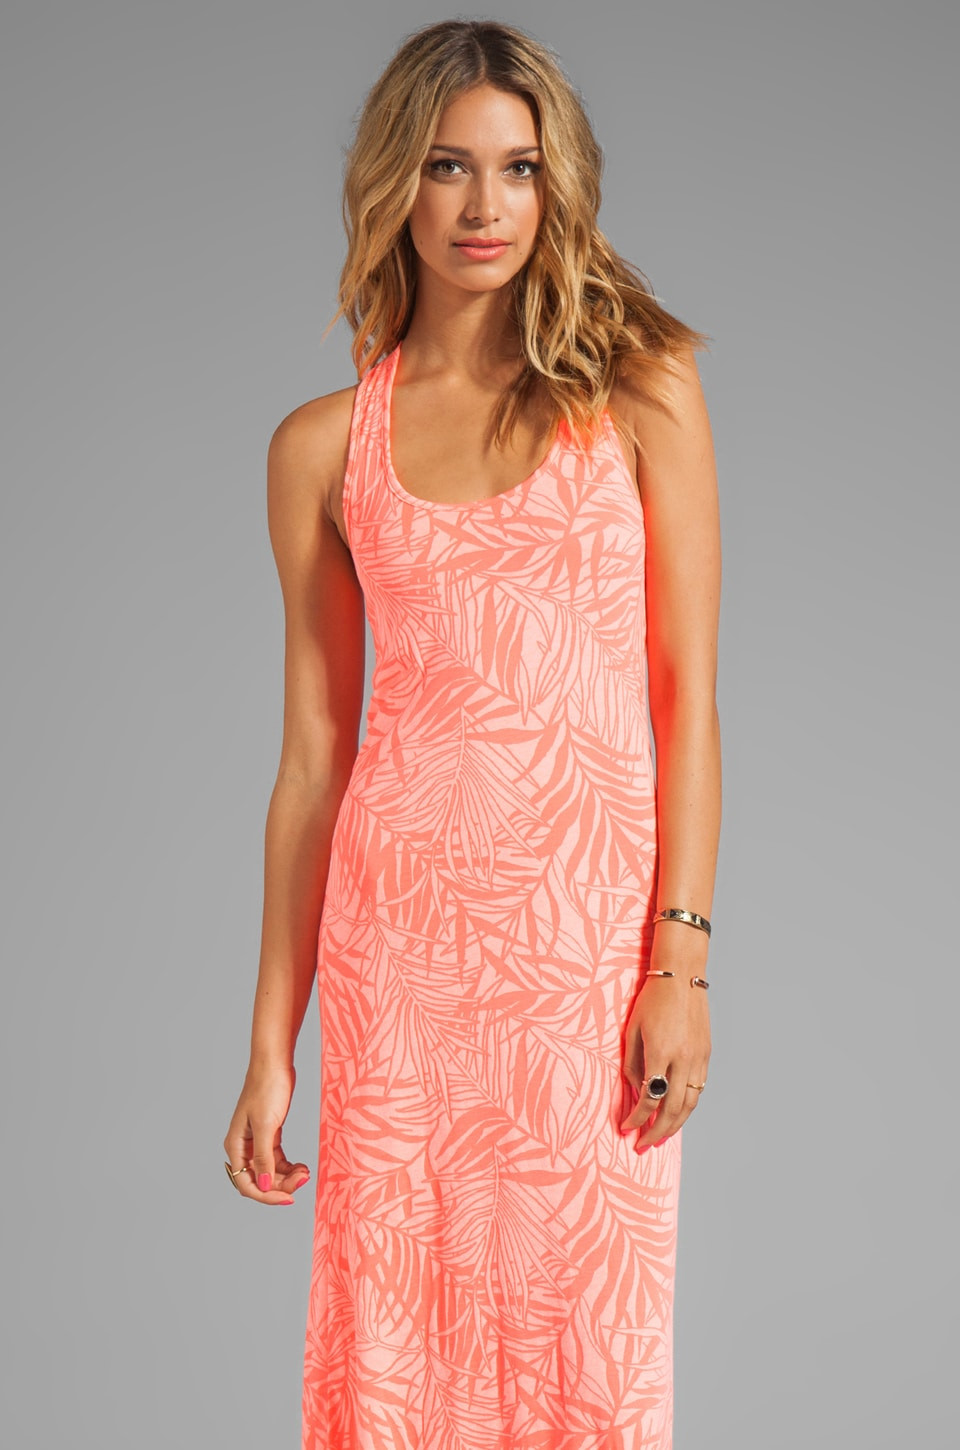 MONROW Island Leaves Maxi Dress in Electric Coral